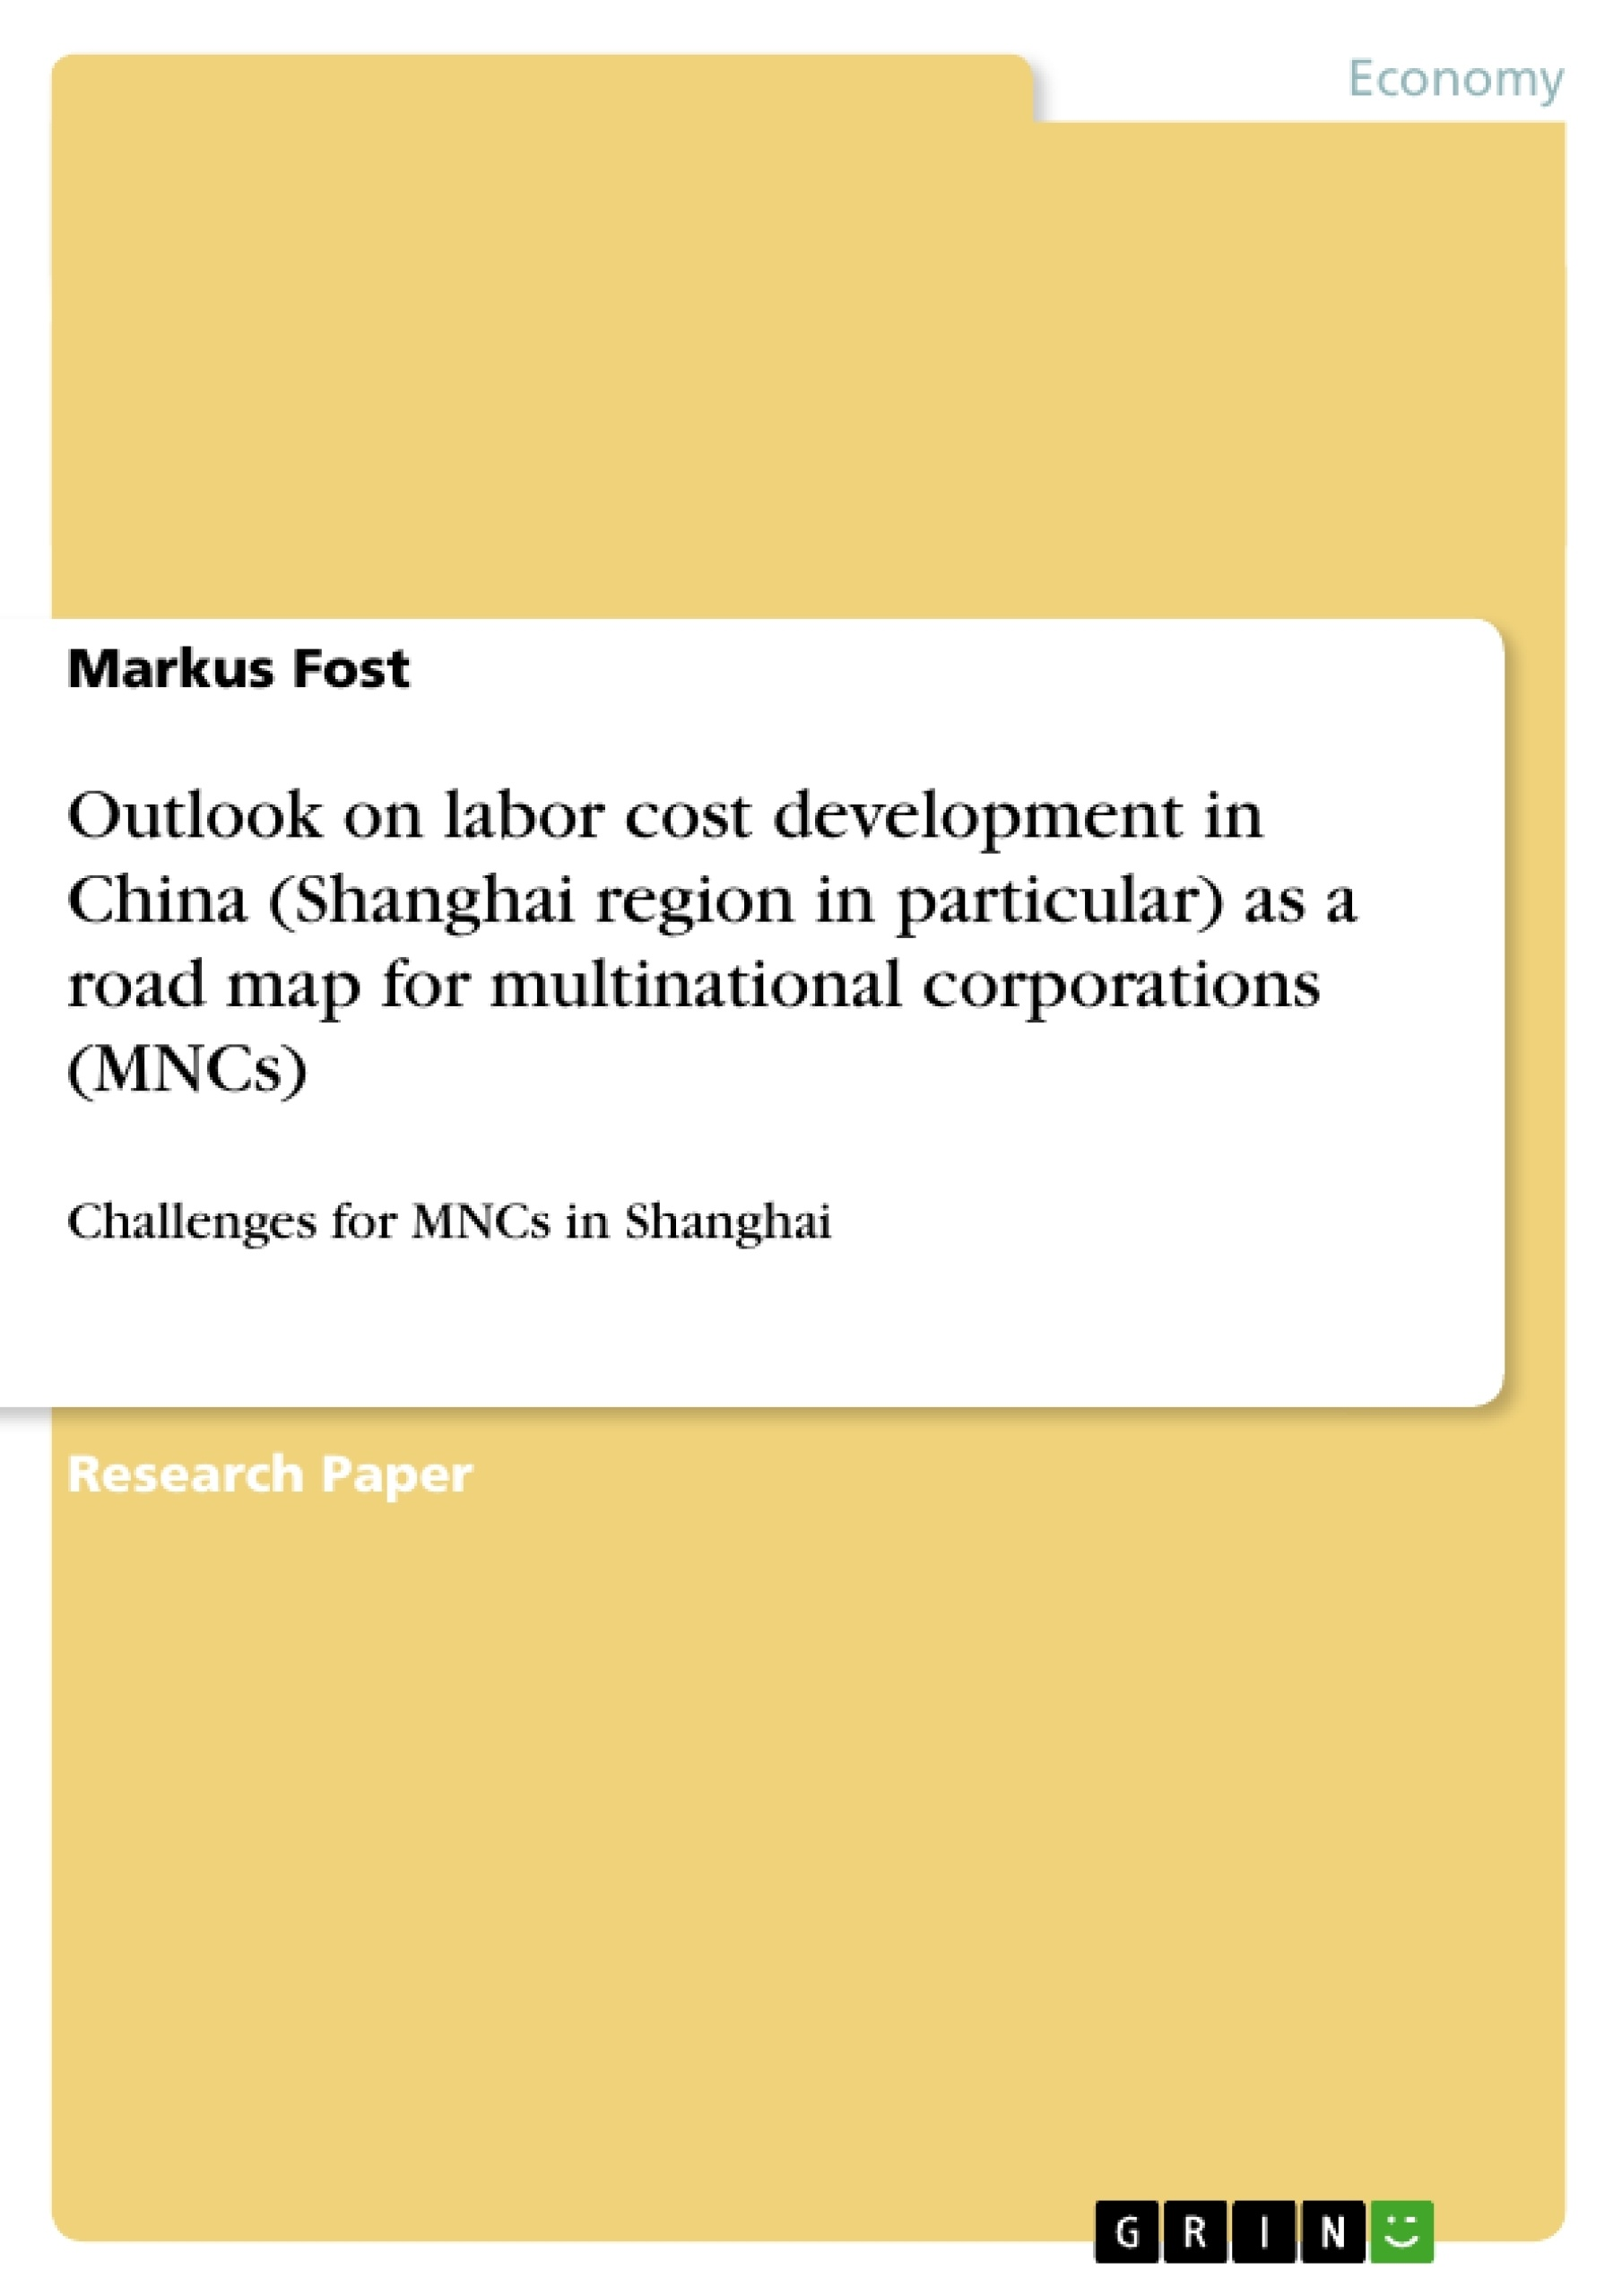 Title: Outlook on labor cost development in China (Shanghai region in particular) as a road map for multinational corporations (MNCs)